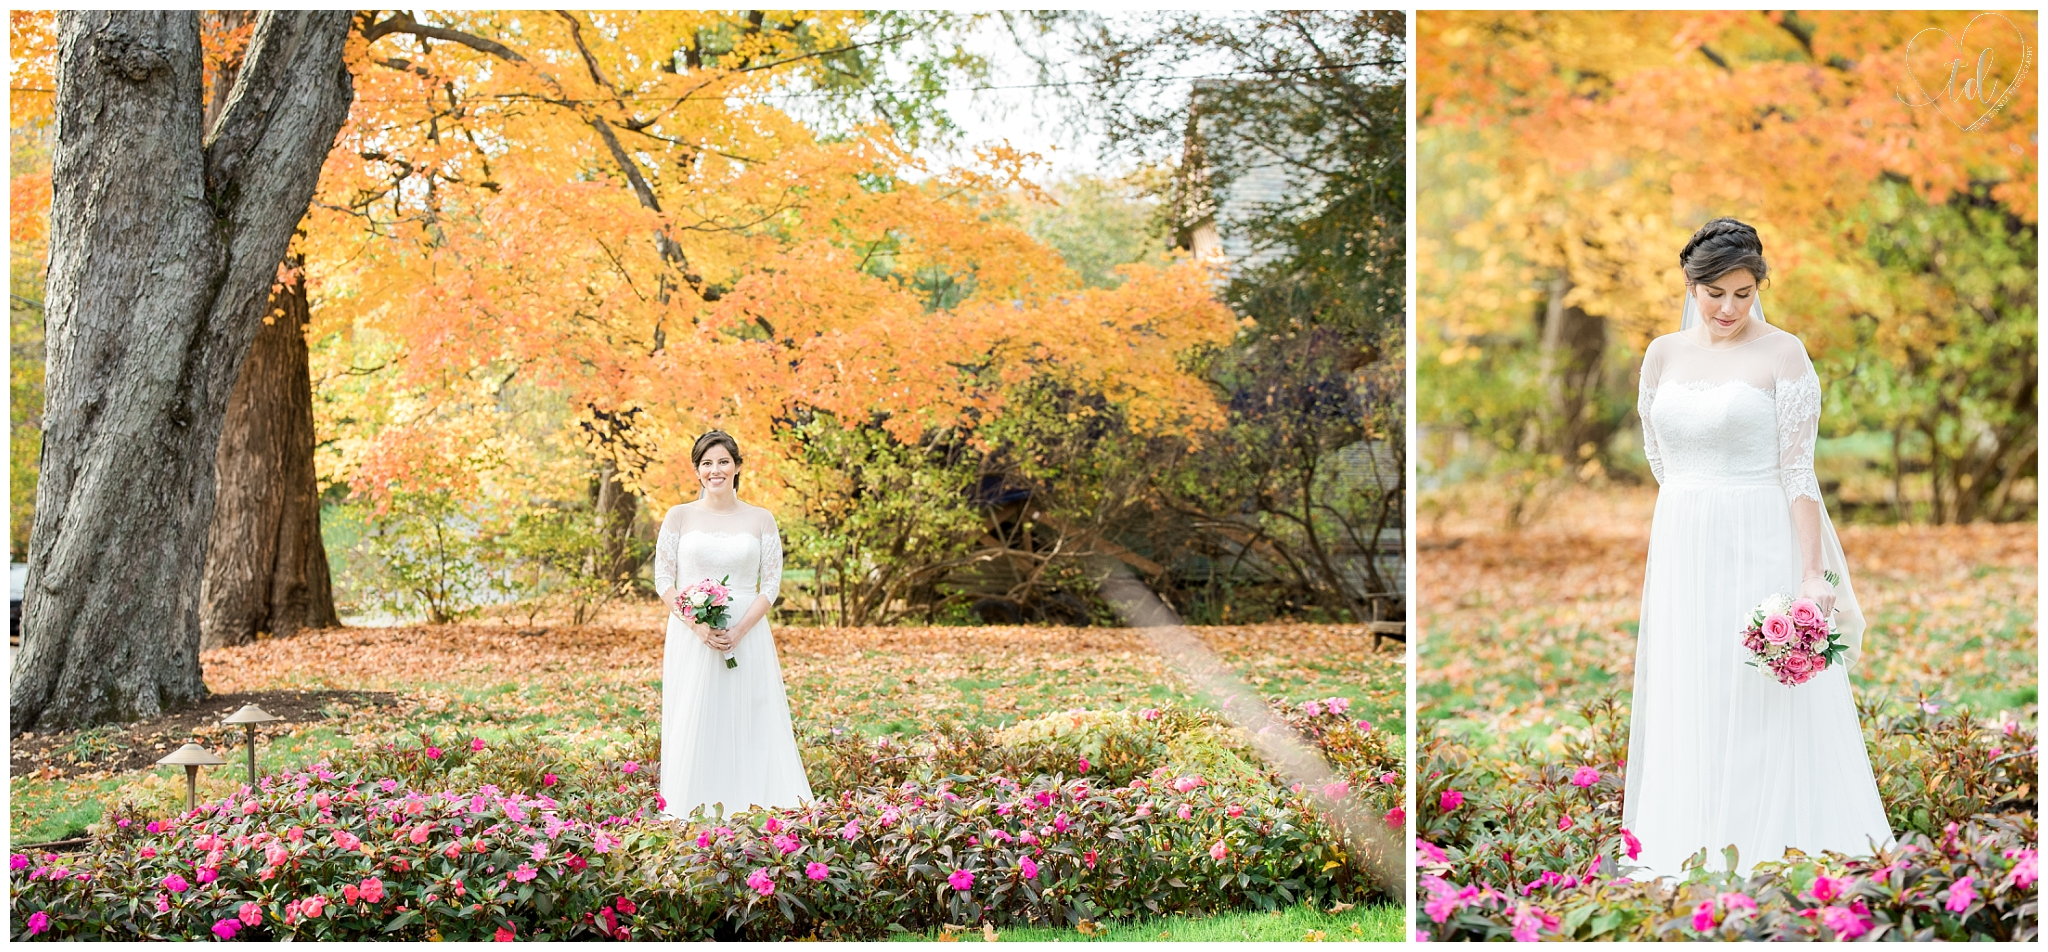 Fall Portrait Photography of a Maine Bride during her Rockland Elopement